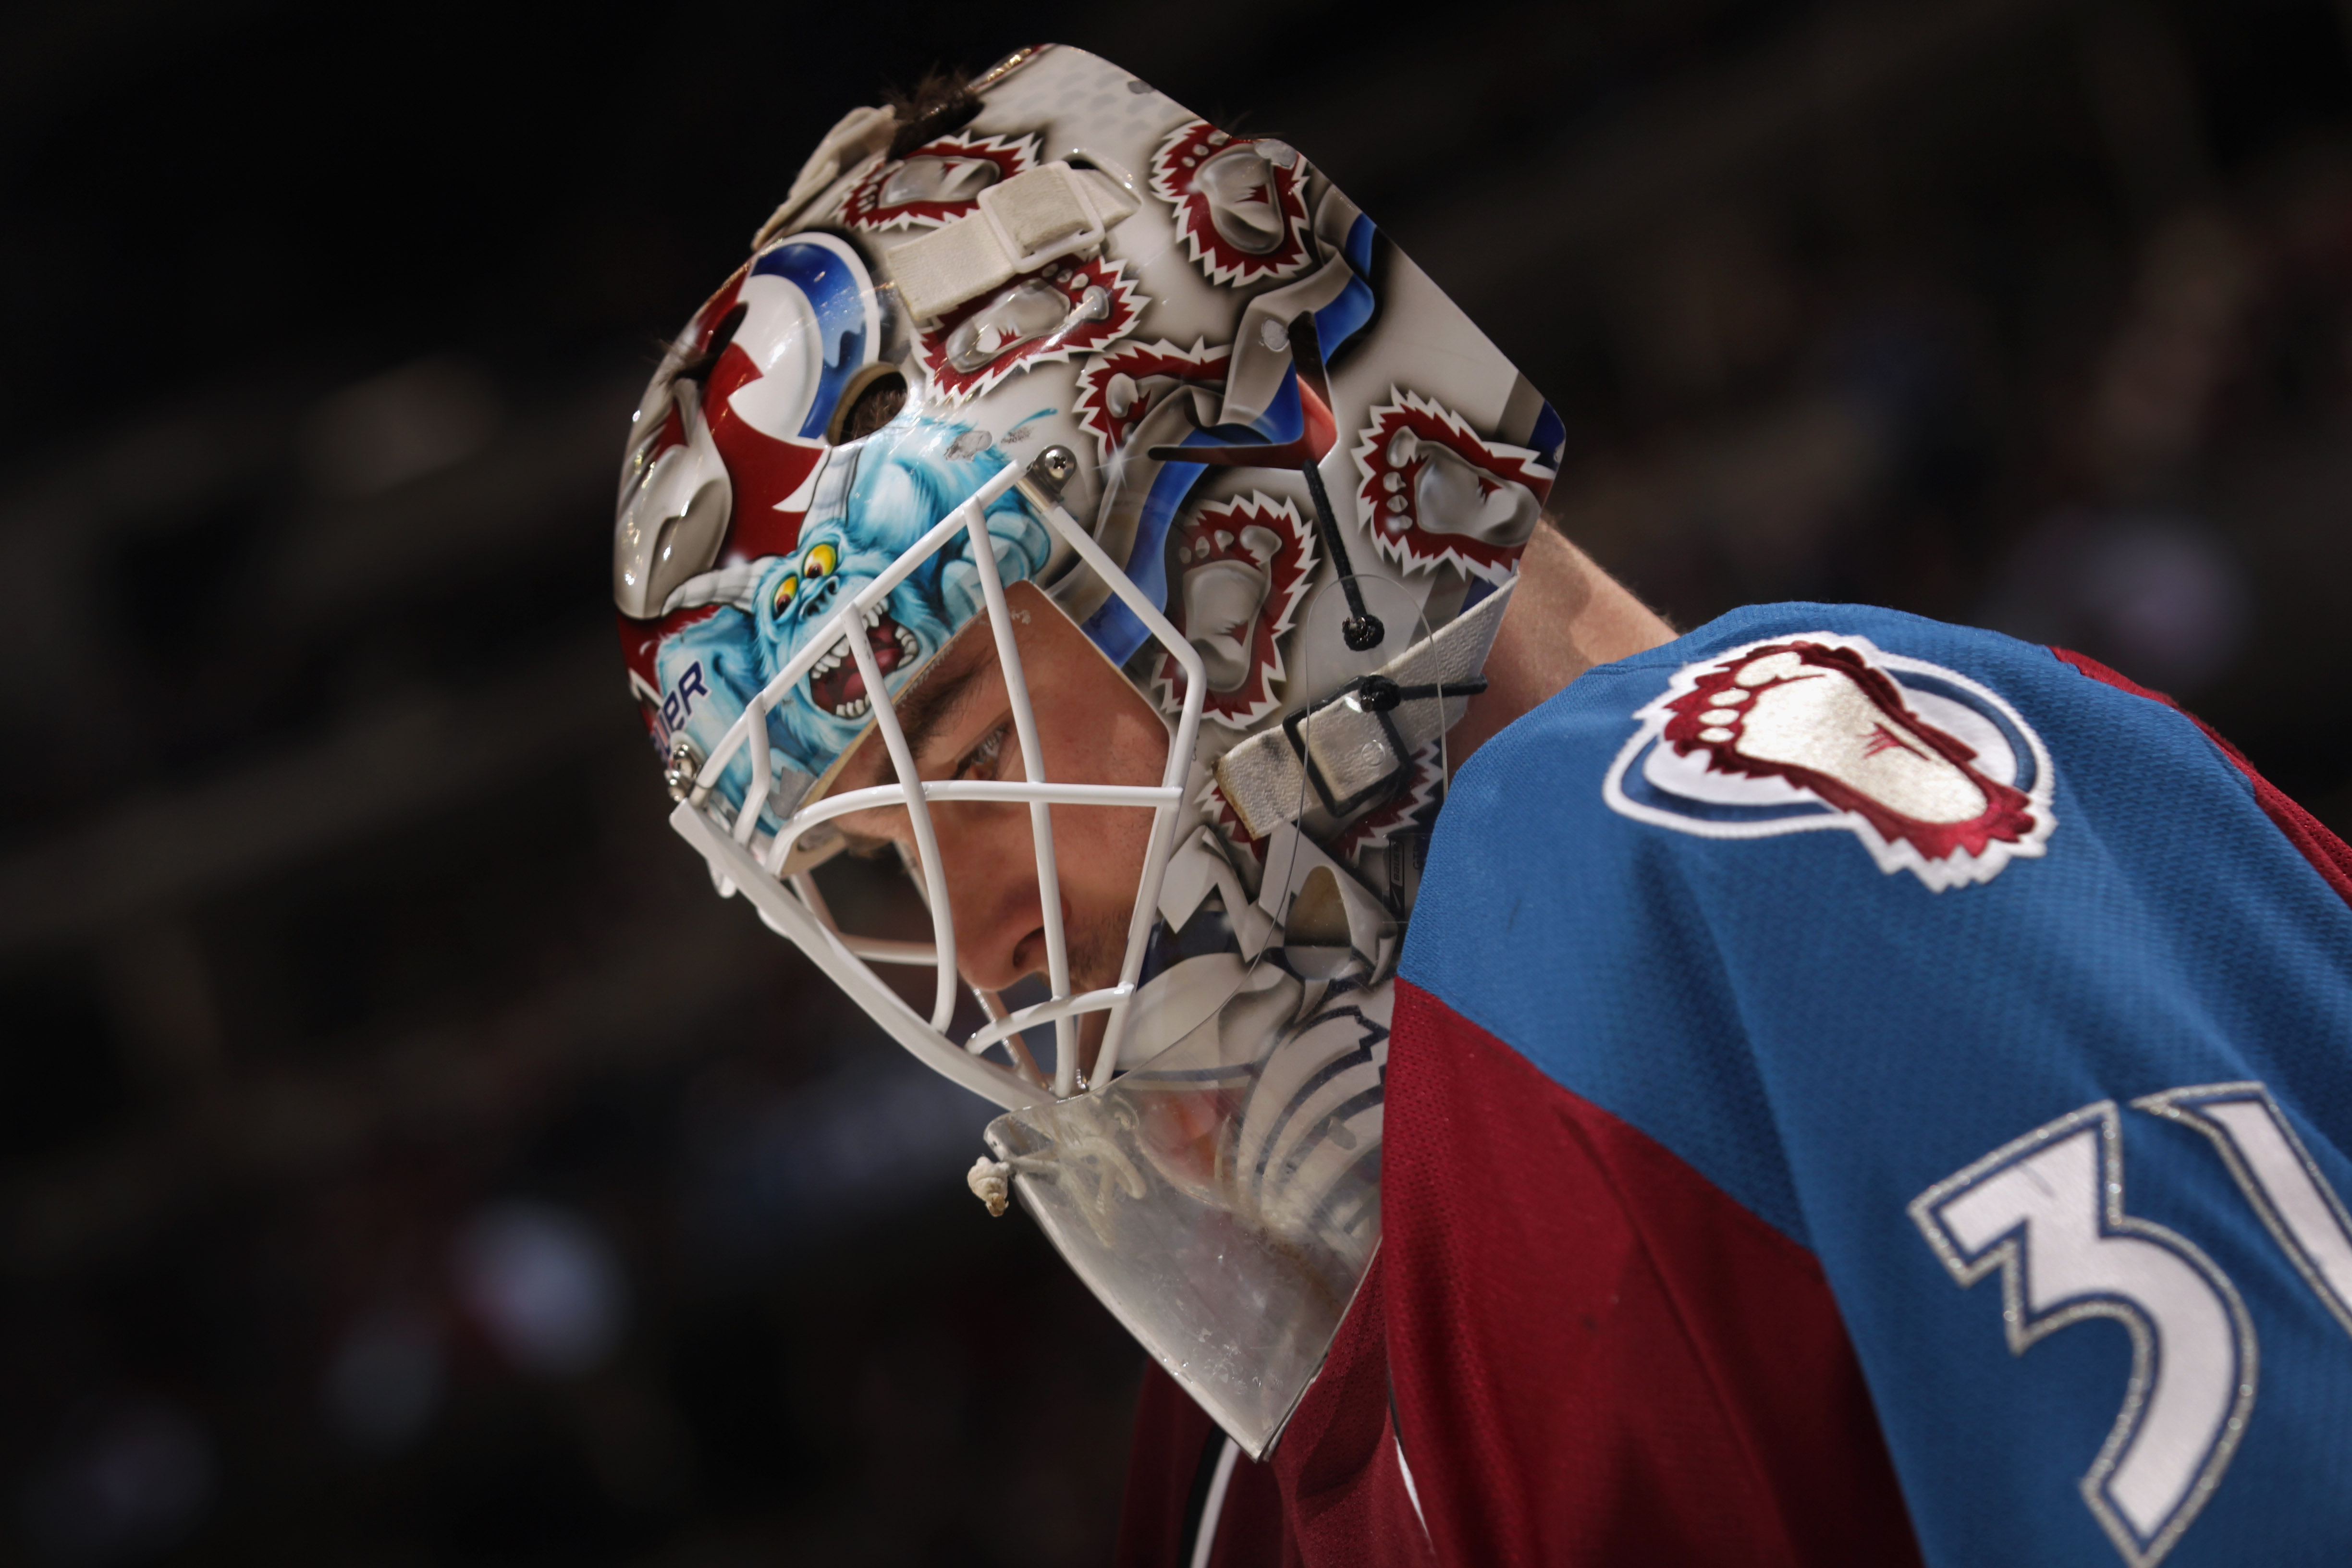 DENVER, CO - FEBRUARY 14:  Goalie Peter Budaj #31 of the Colorado Avalanche looks on during a break in the action after re-entering the game against the Calgary Flames in the second period at the Pepsi Center on February 14, 2011 in Denver, Colorado. The